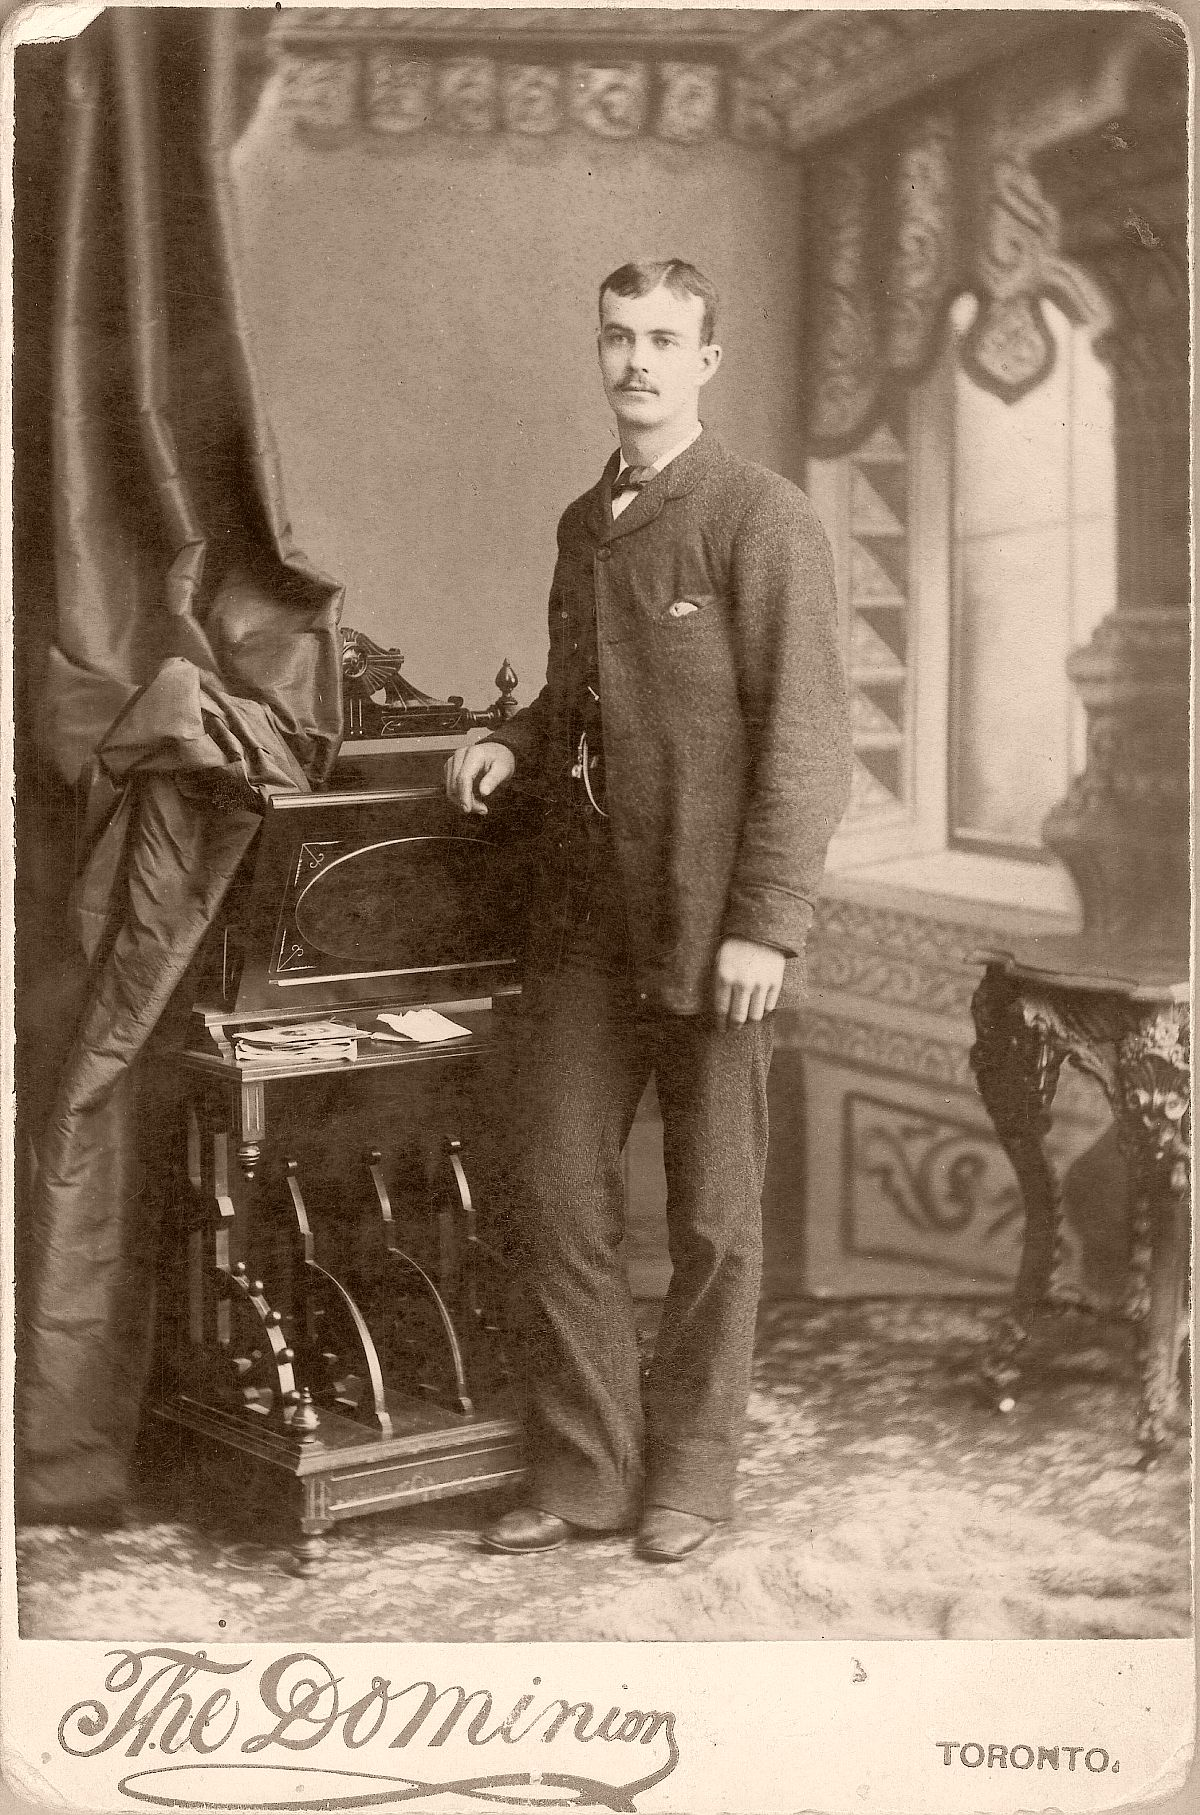 cabinet-cards-1880s-to-1890s-vintage-19th-century-victorian-era-30